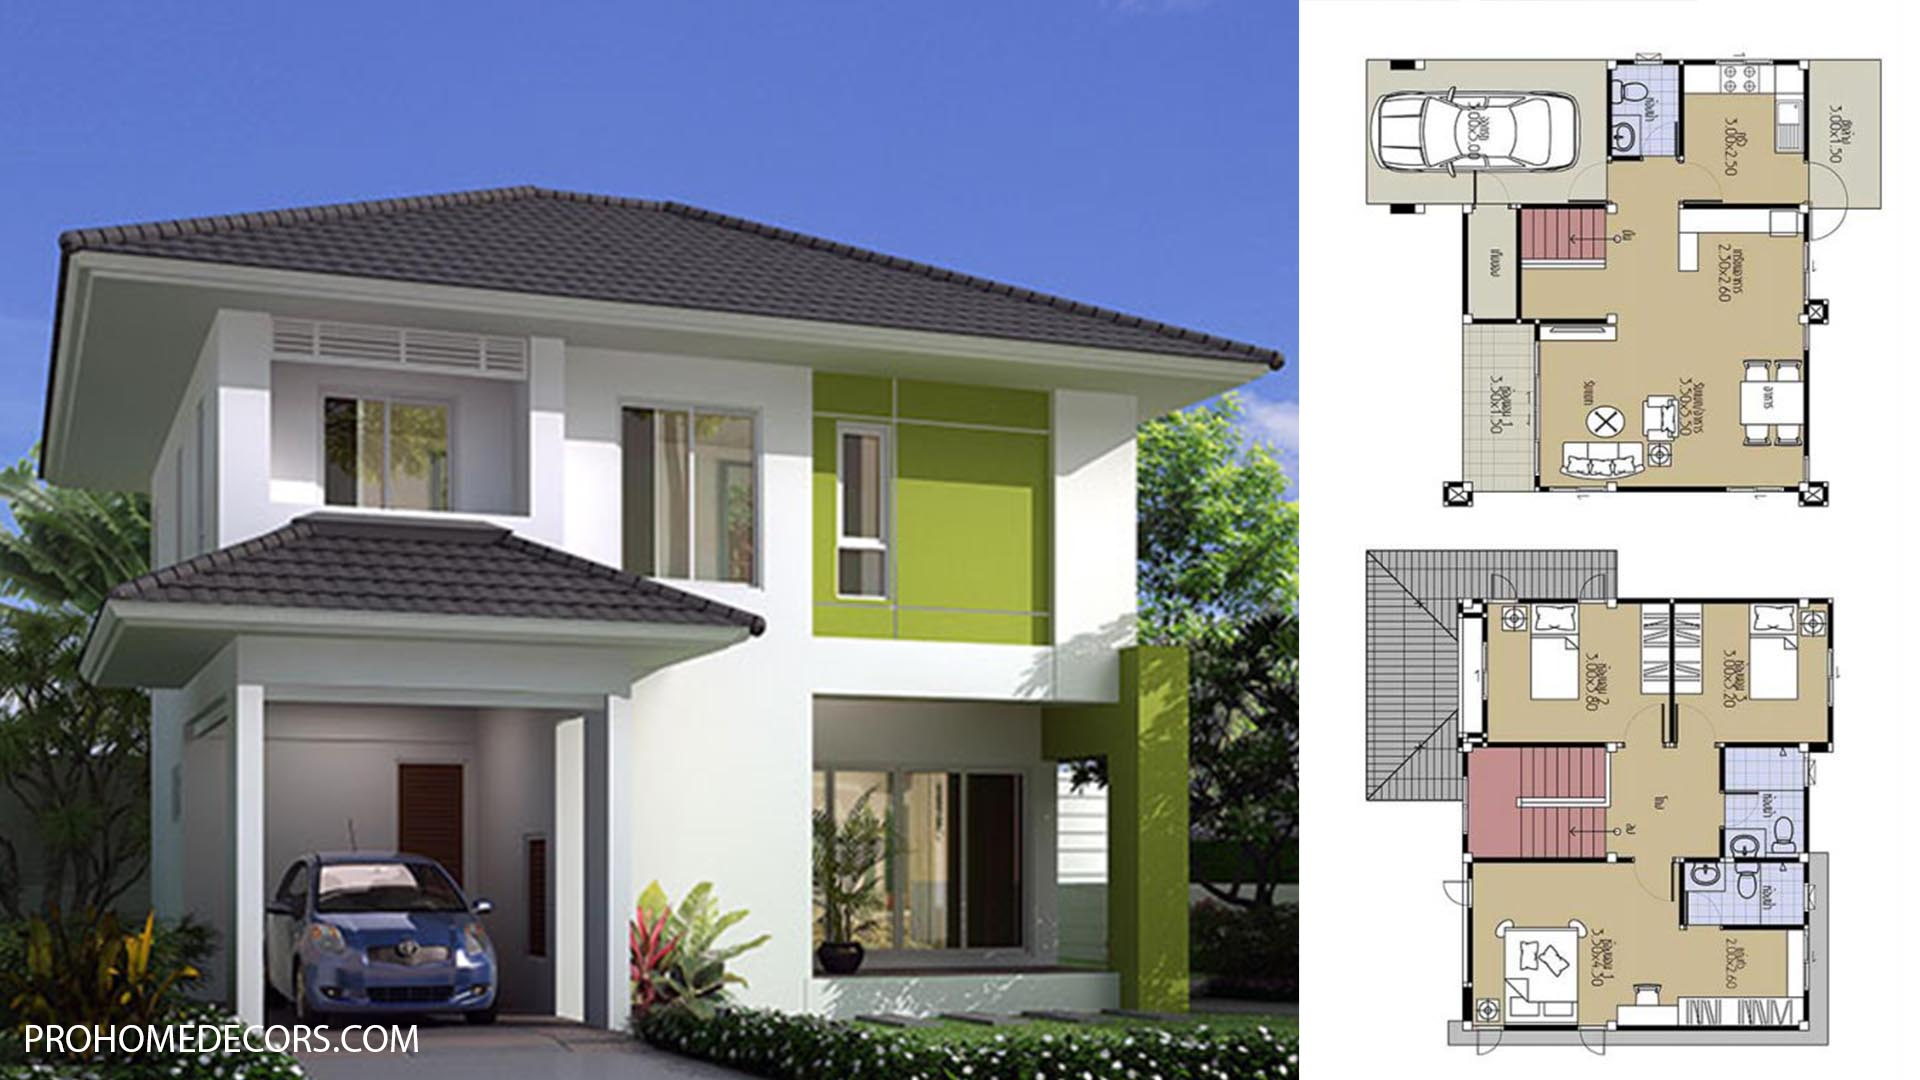 House Plans 8.8×8 with 3 Beds